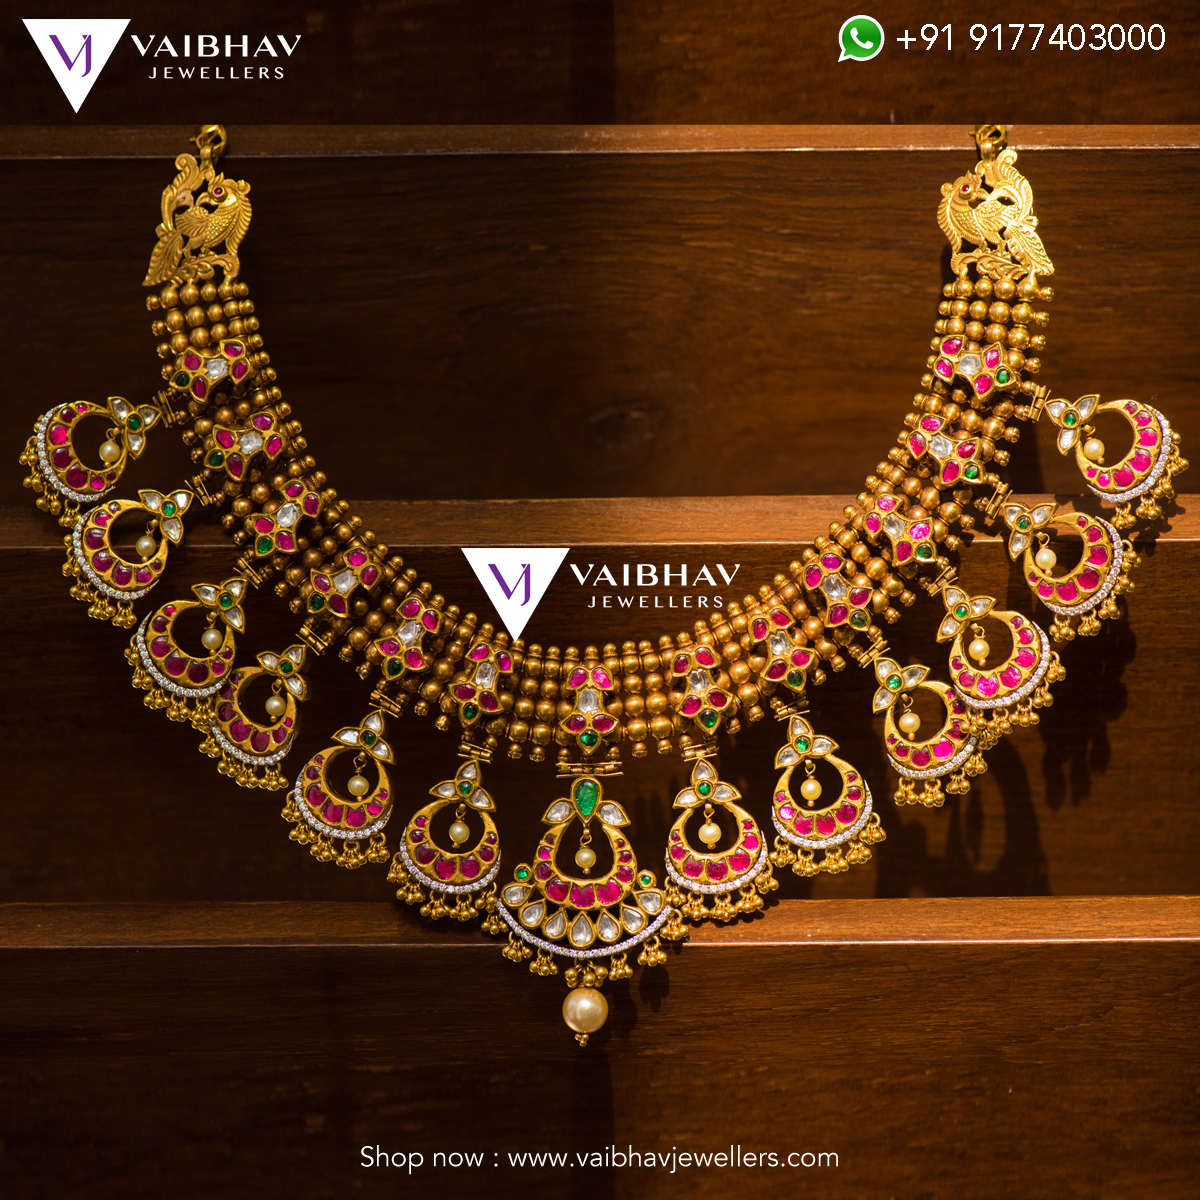 Temple Necklace From Vaibhav Jewellers